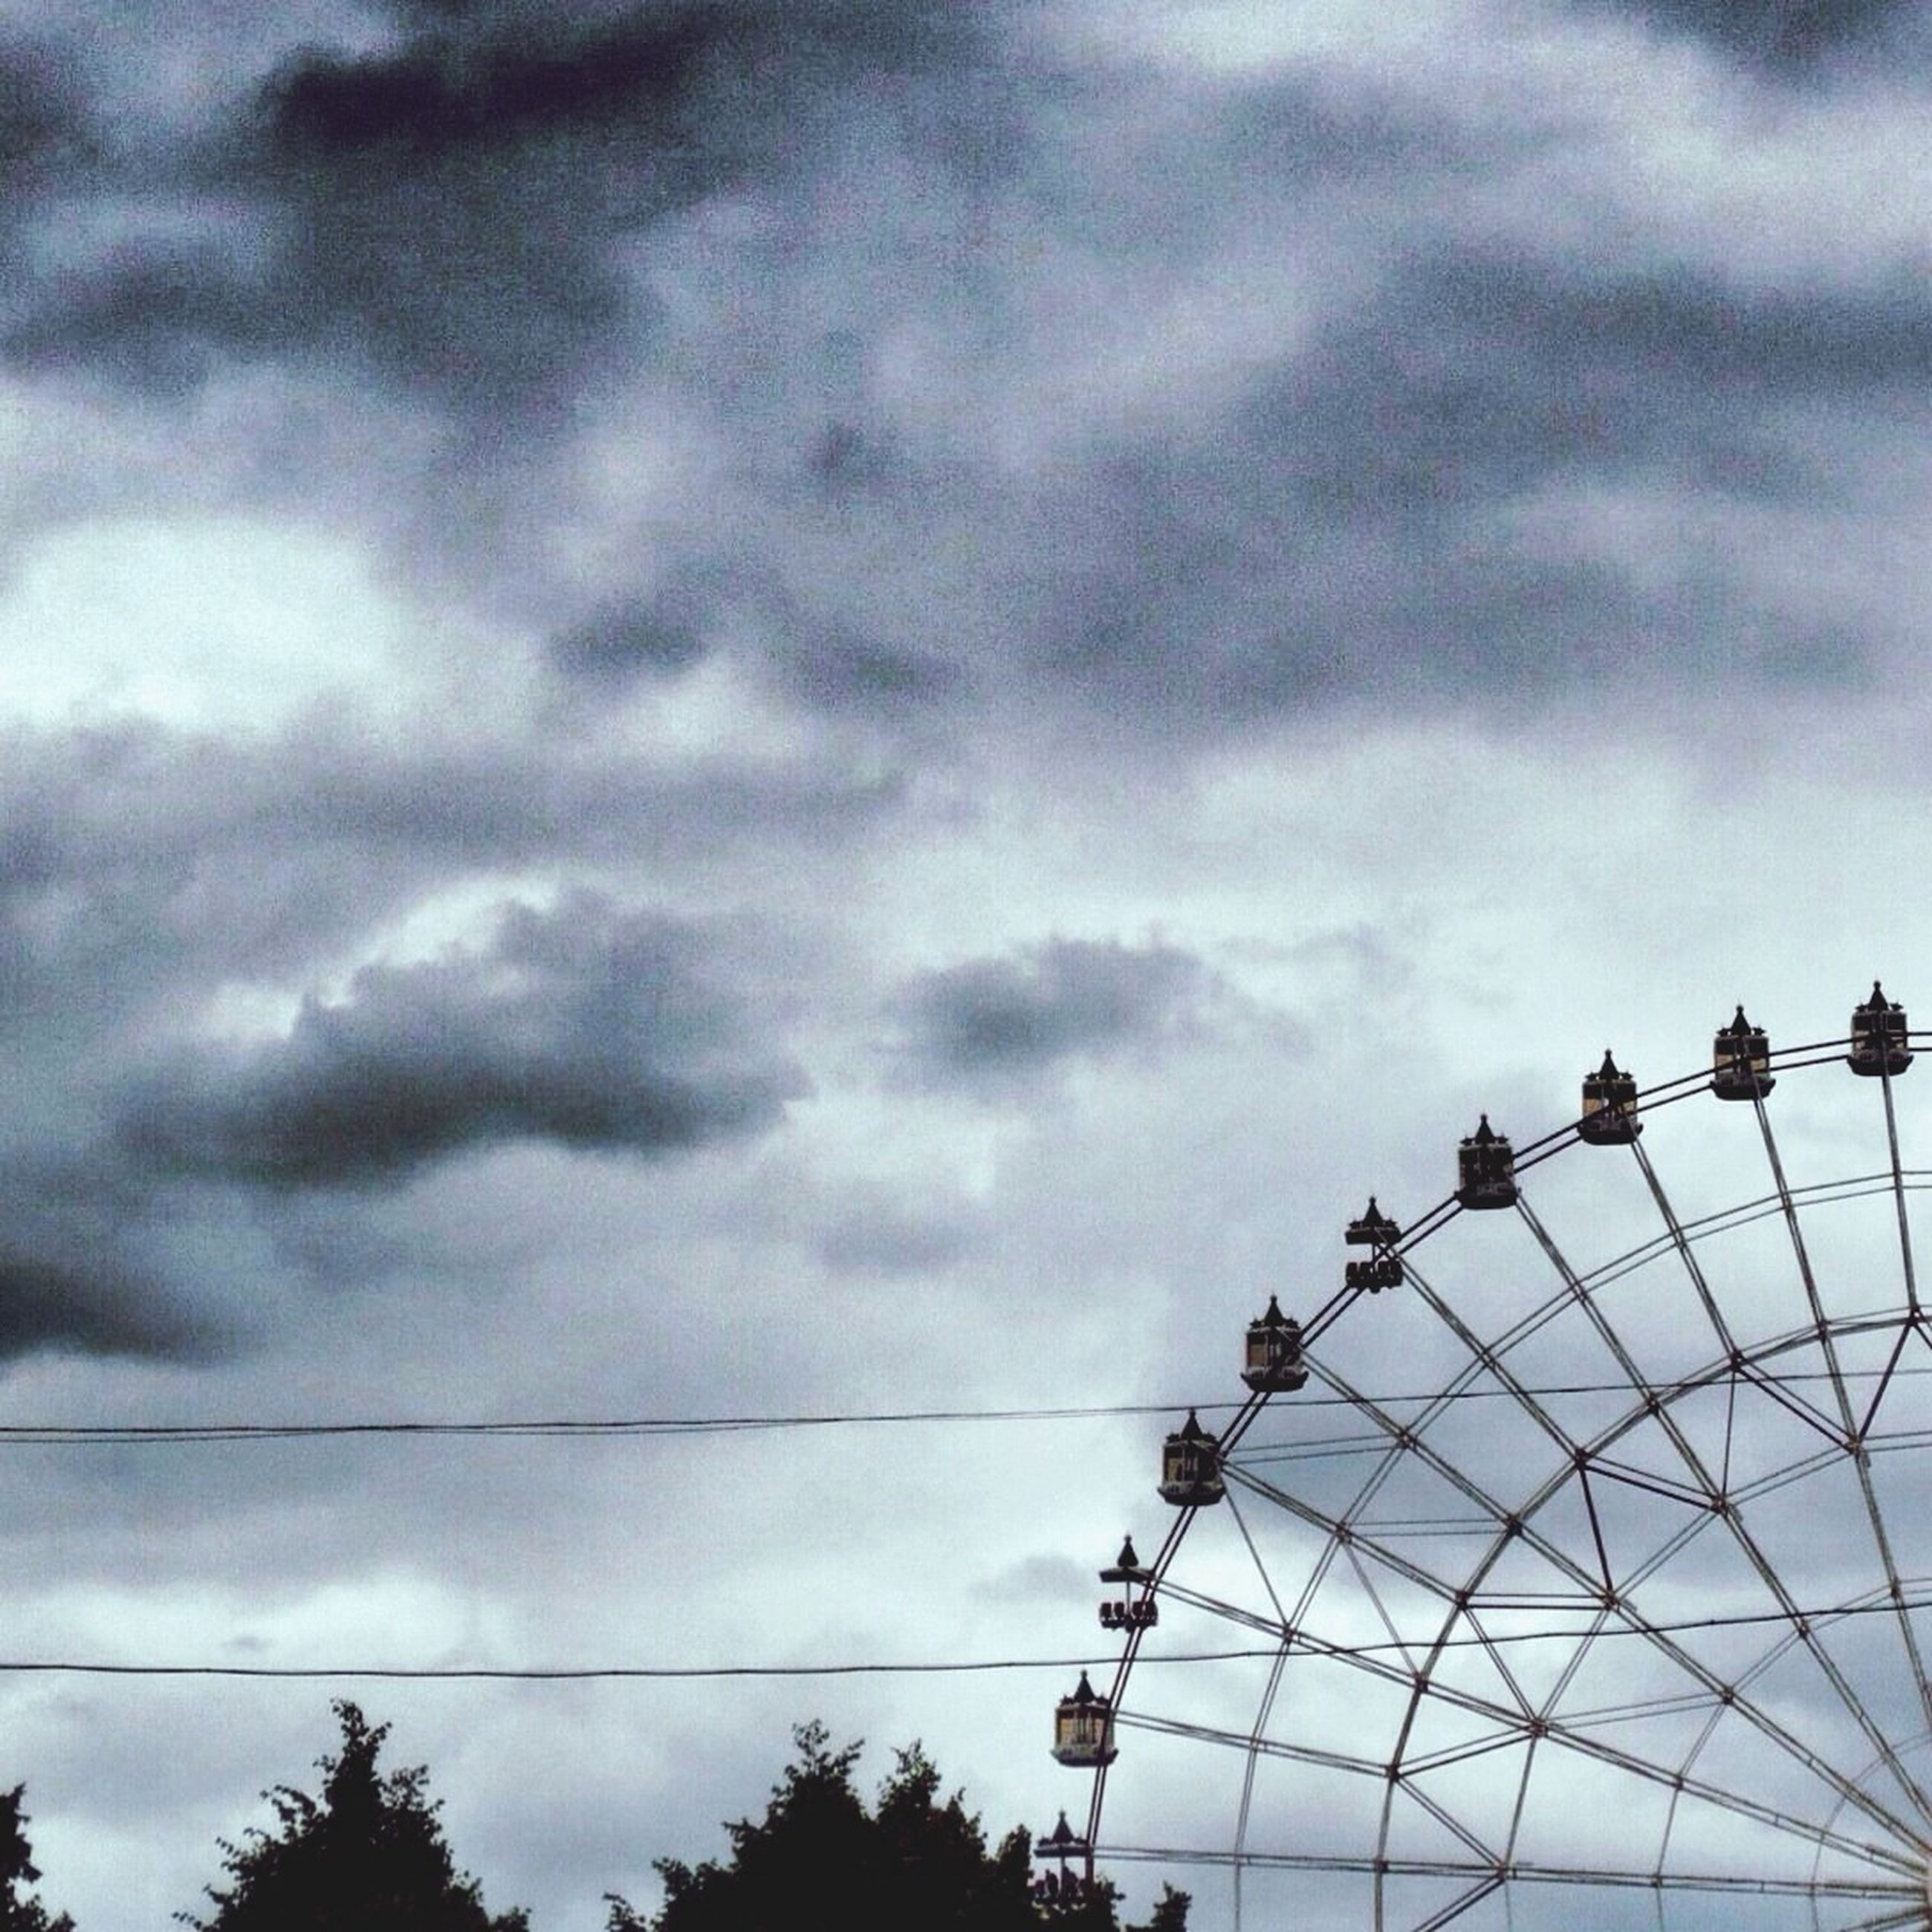 low angle view, sky, cloud - sky, cloudy, built structure, ferris wheel, architecture, cloud, amusement park, arts culture and entertainment, amusement park ride, silhouette, overcast, day, outdoors, tall - high, no people, building exterior, weather, metal